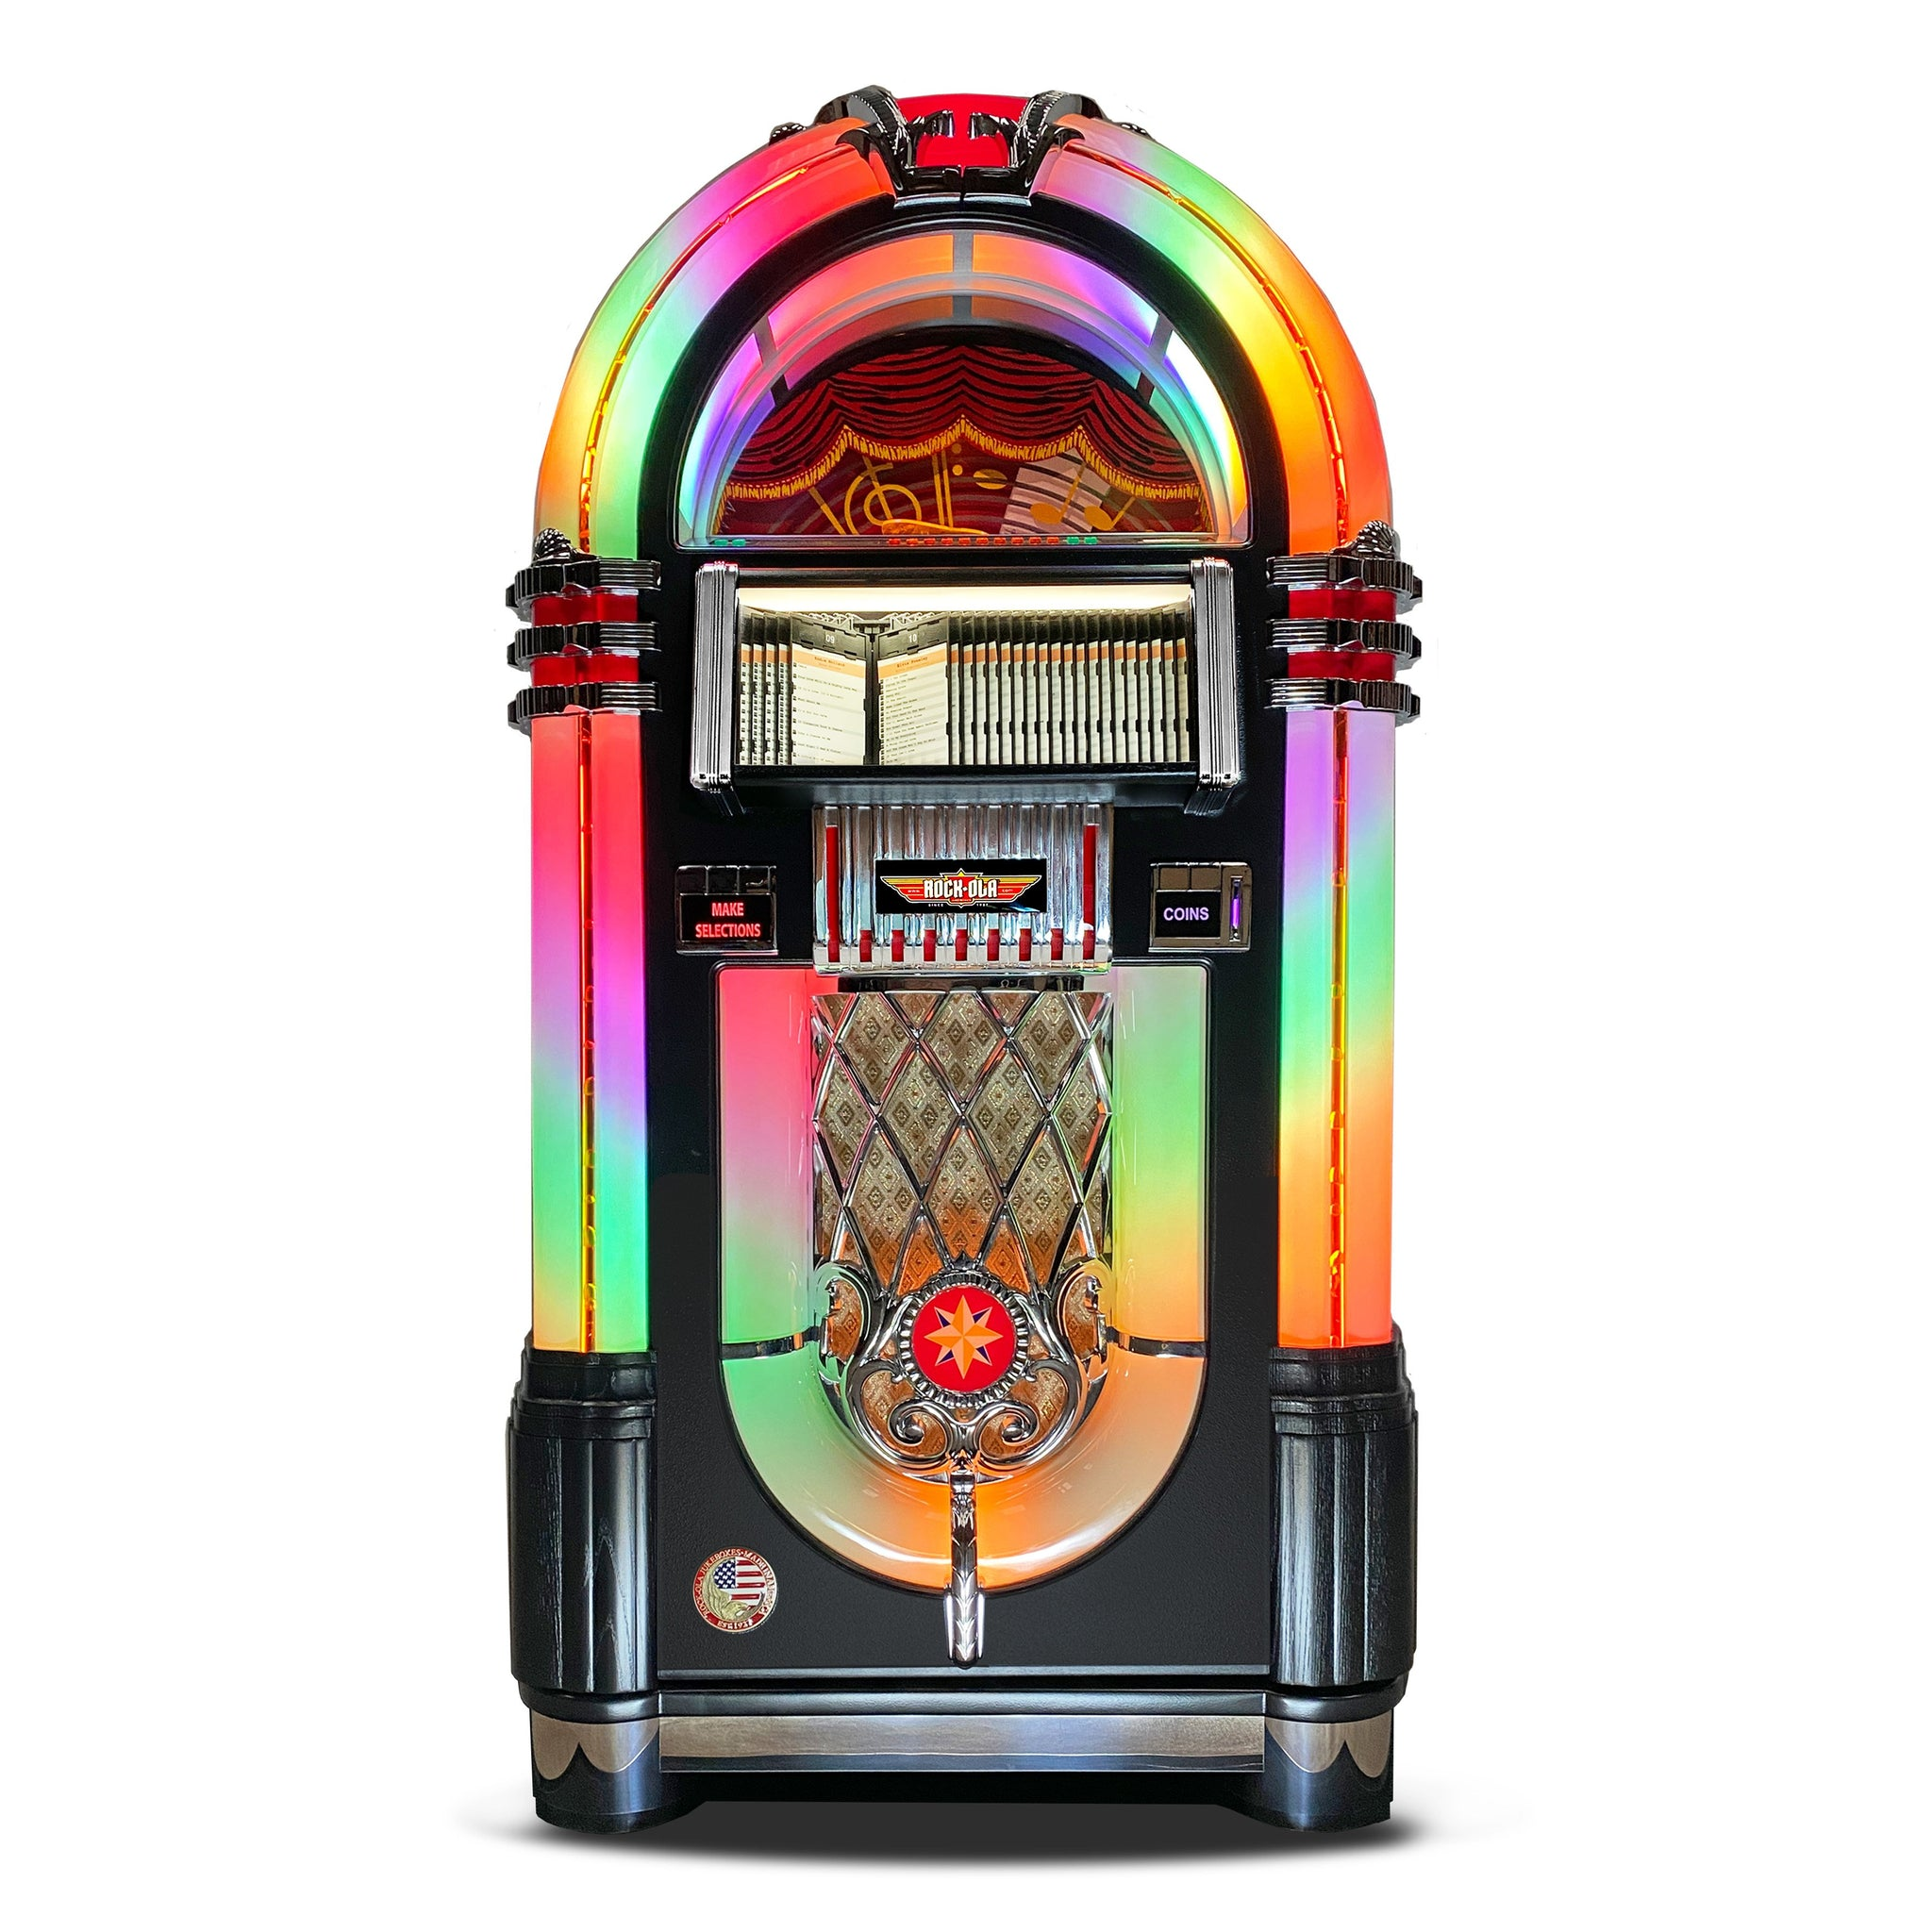 Rock-Ola Bubbler CD Jukebox in Black